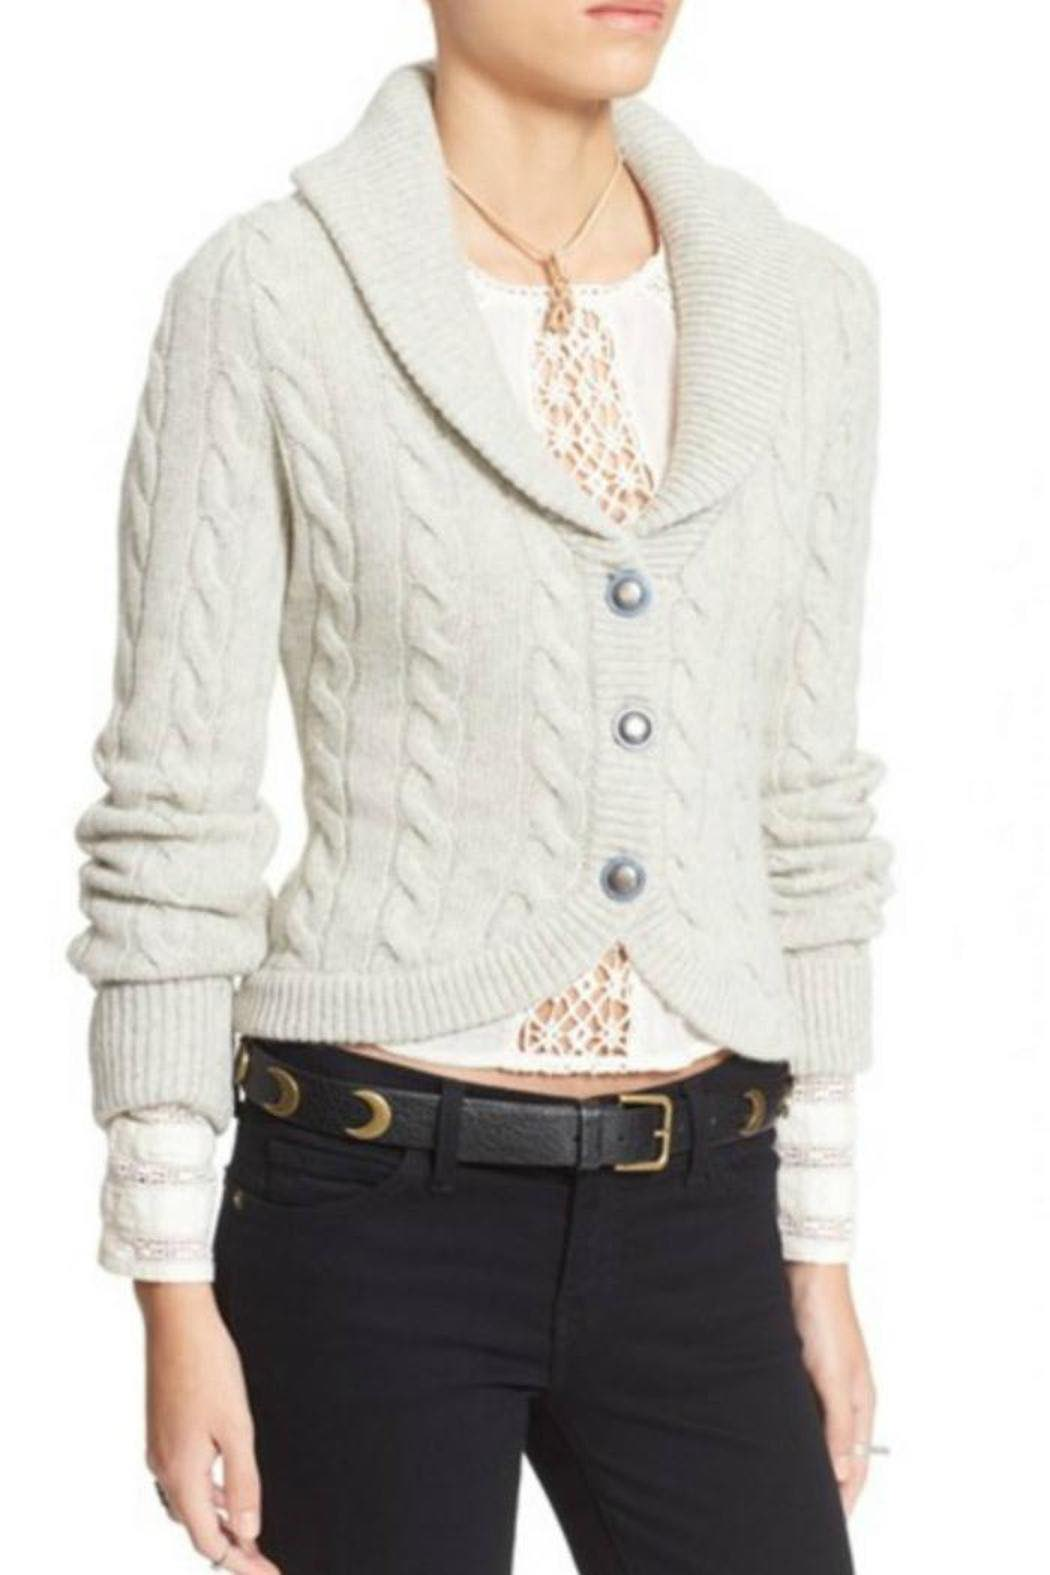 OB461242 Free People Viceroy Cardigan, Canada